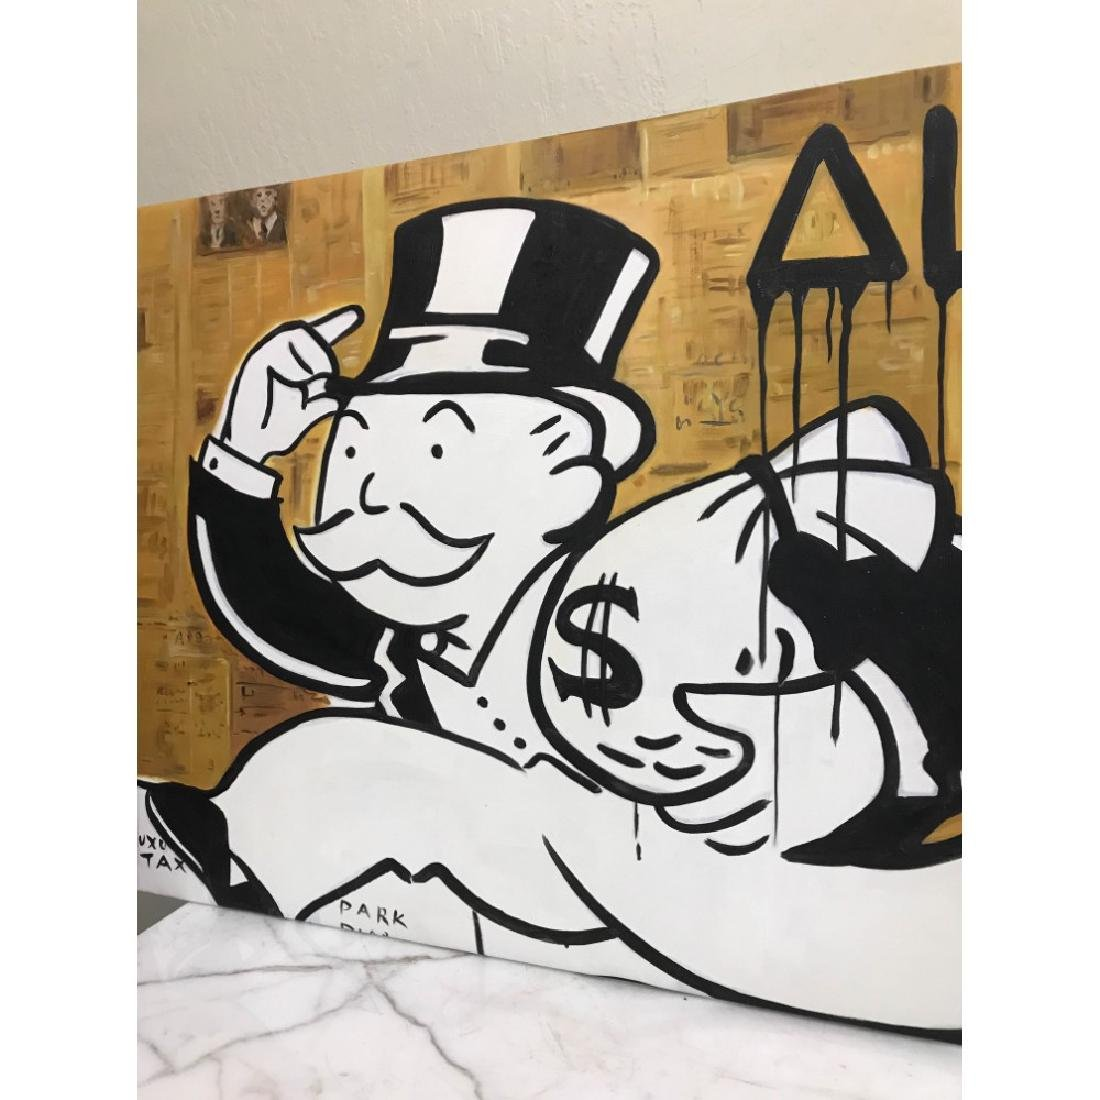 Oil on Canvas of Monopoly Man w/ Bag of Money - 2